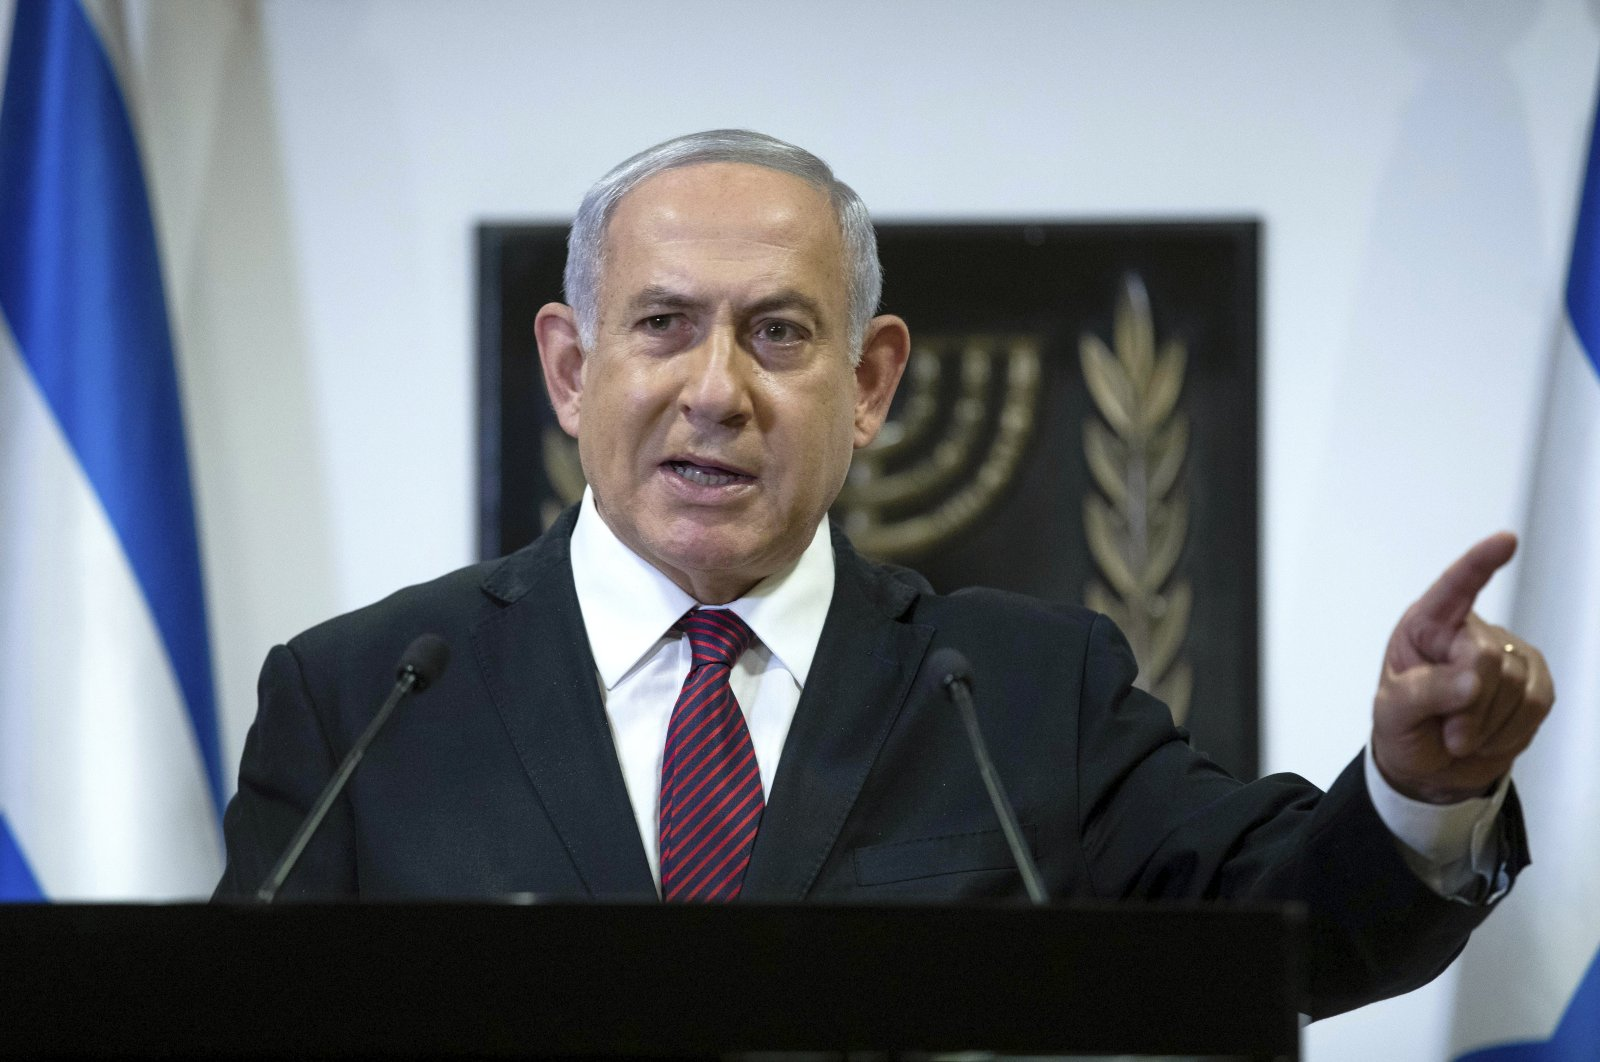 Israeli Prime Minister Benjamin Netanyahu delivers a statement at the Israeli Knesset, Jerusalem, Dec. 22, 2020. (AP Photo)